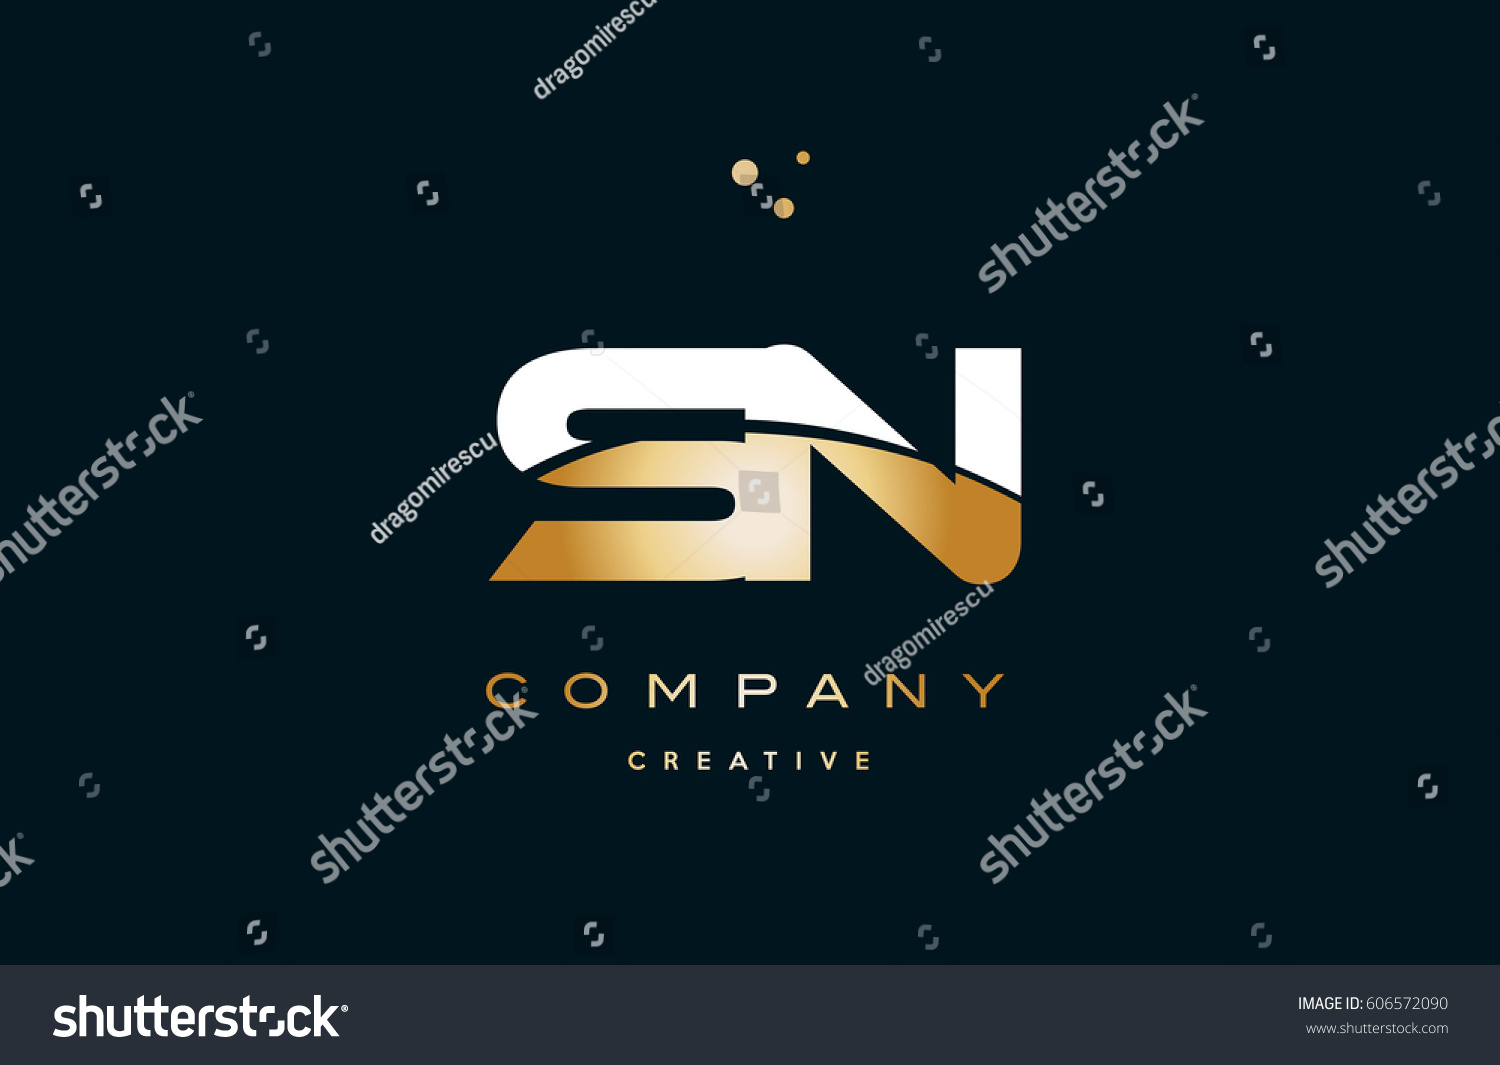 Sn s n white yellow gold stock vector 606572090 shutterstock sn s n white yellow gold golden metal metallic luxury alphabet company letter logo design vector icon biocorpaavc Image collections